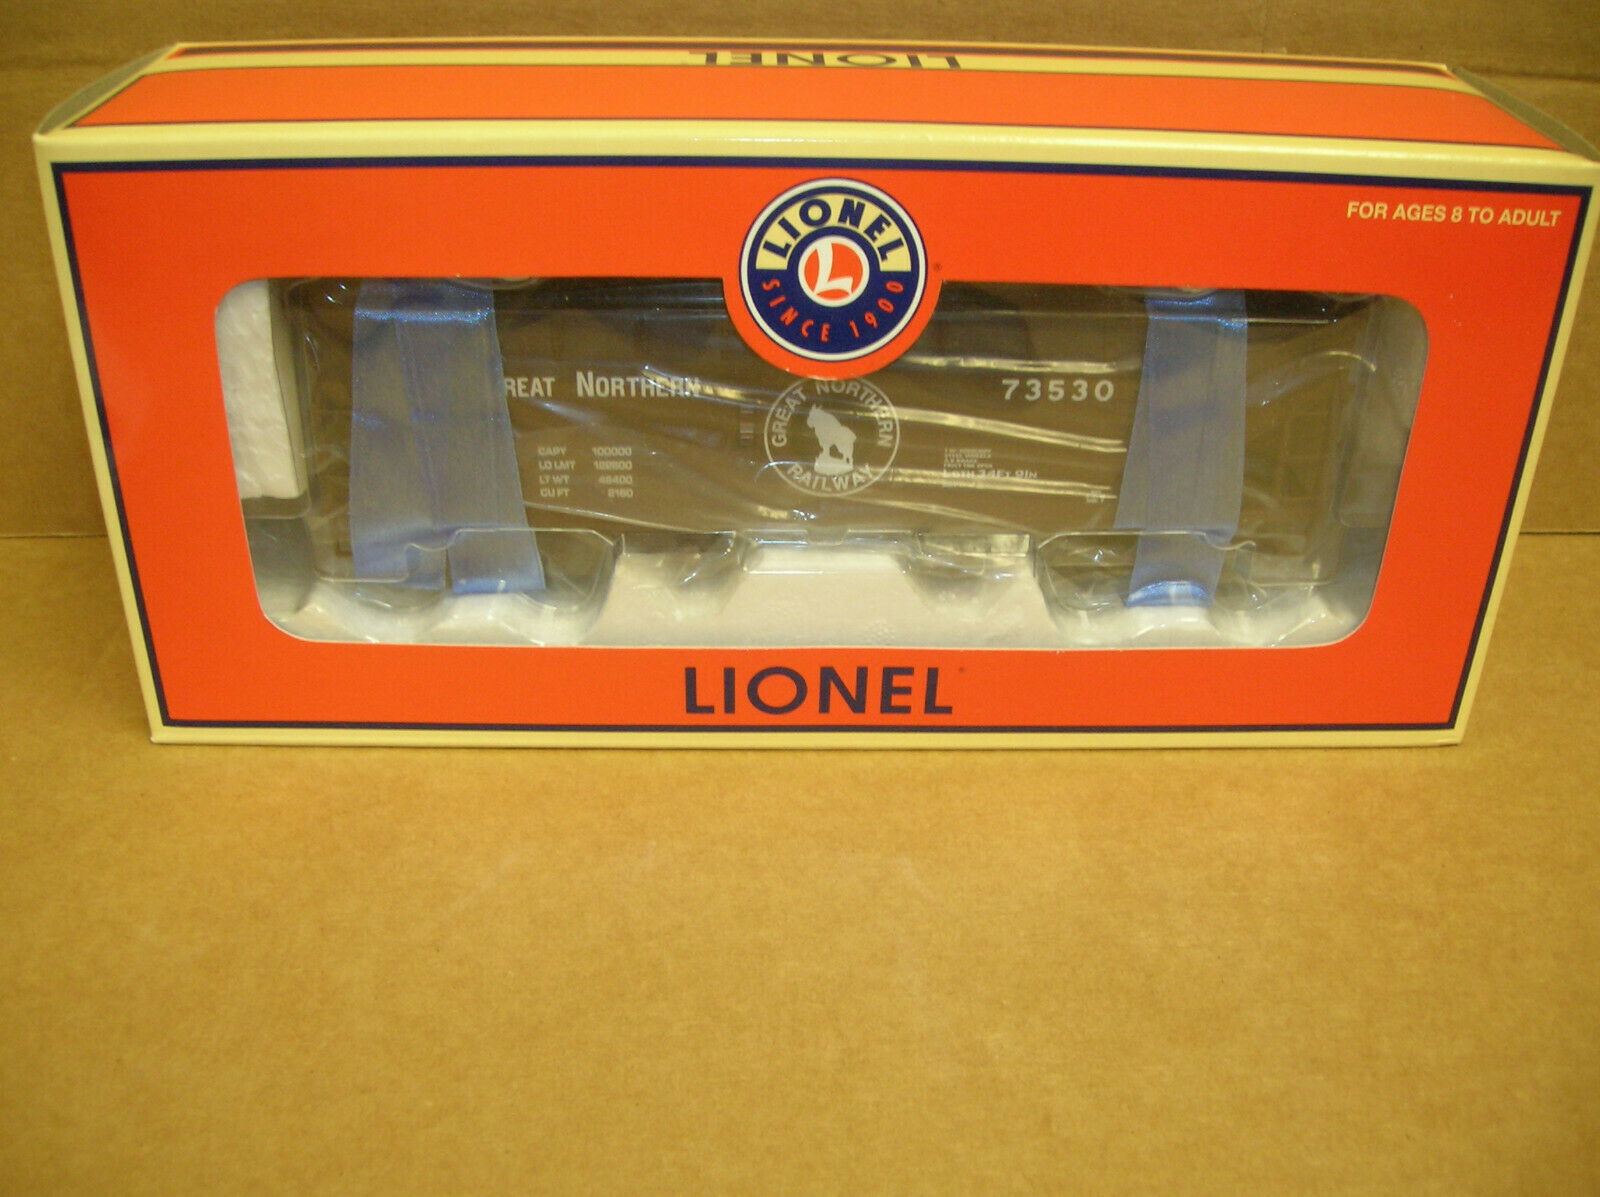 LIONEL 617041 GREAT NORTHERN OFF SET DIECAST HOPPER auto  73530  rendere OFFERS